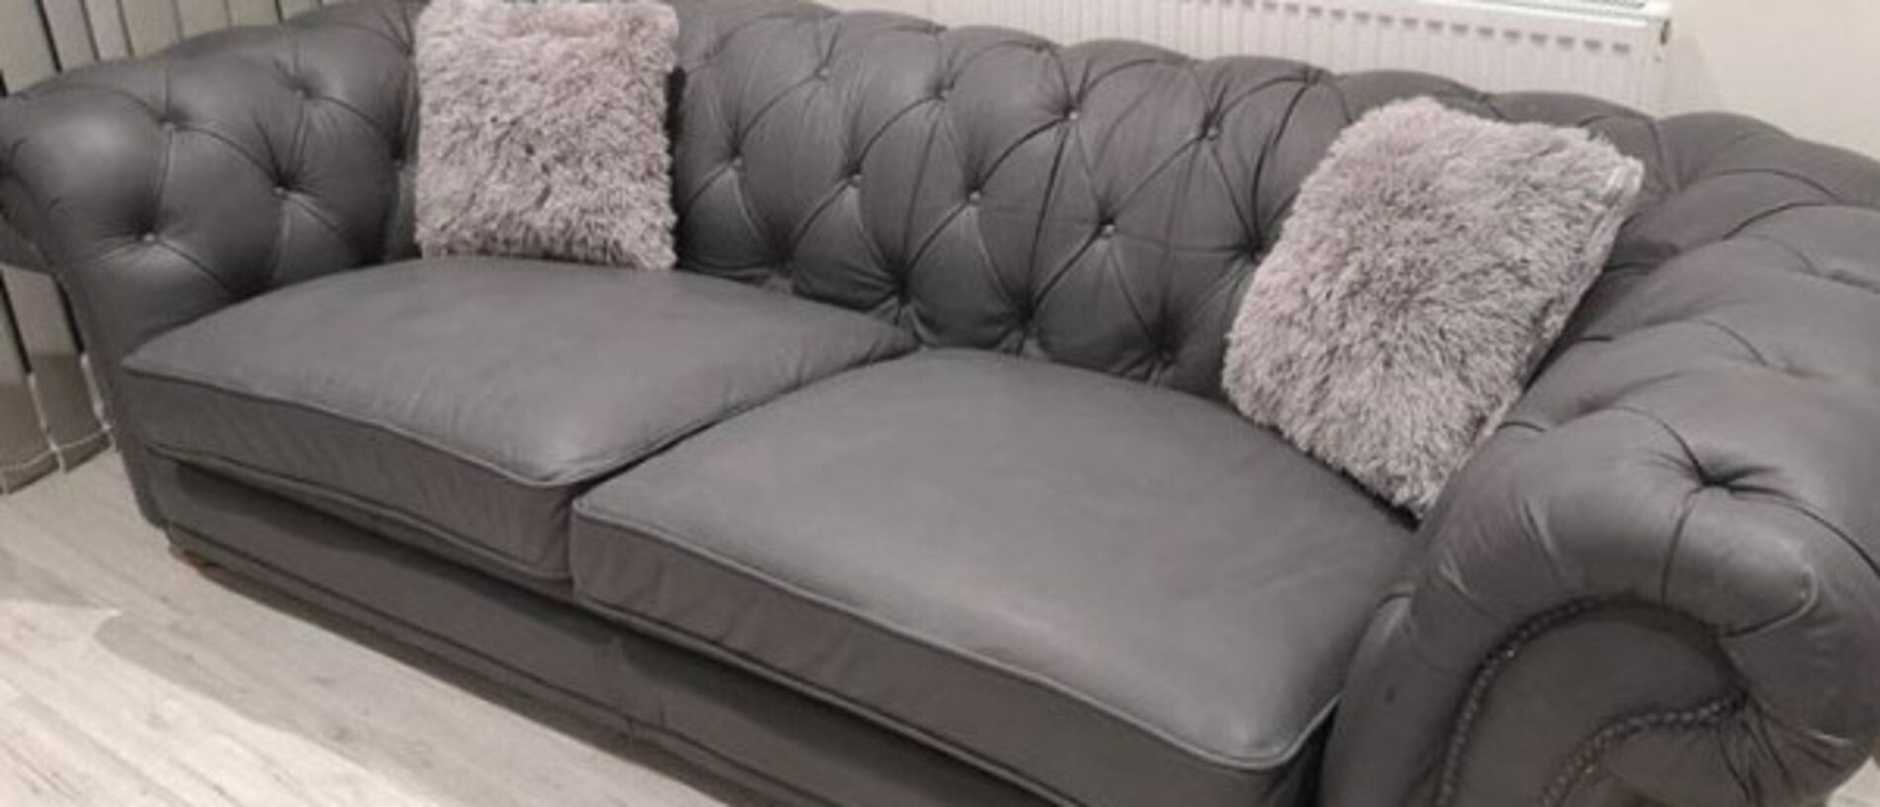 The couch, after its transformation, not only looks great but also worked with the home's interior. Picture: Facebook/DIY on a budget